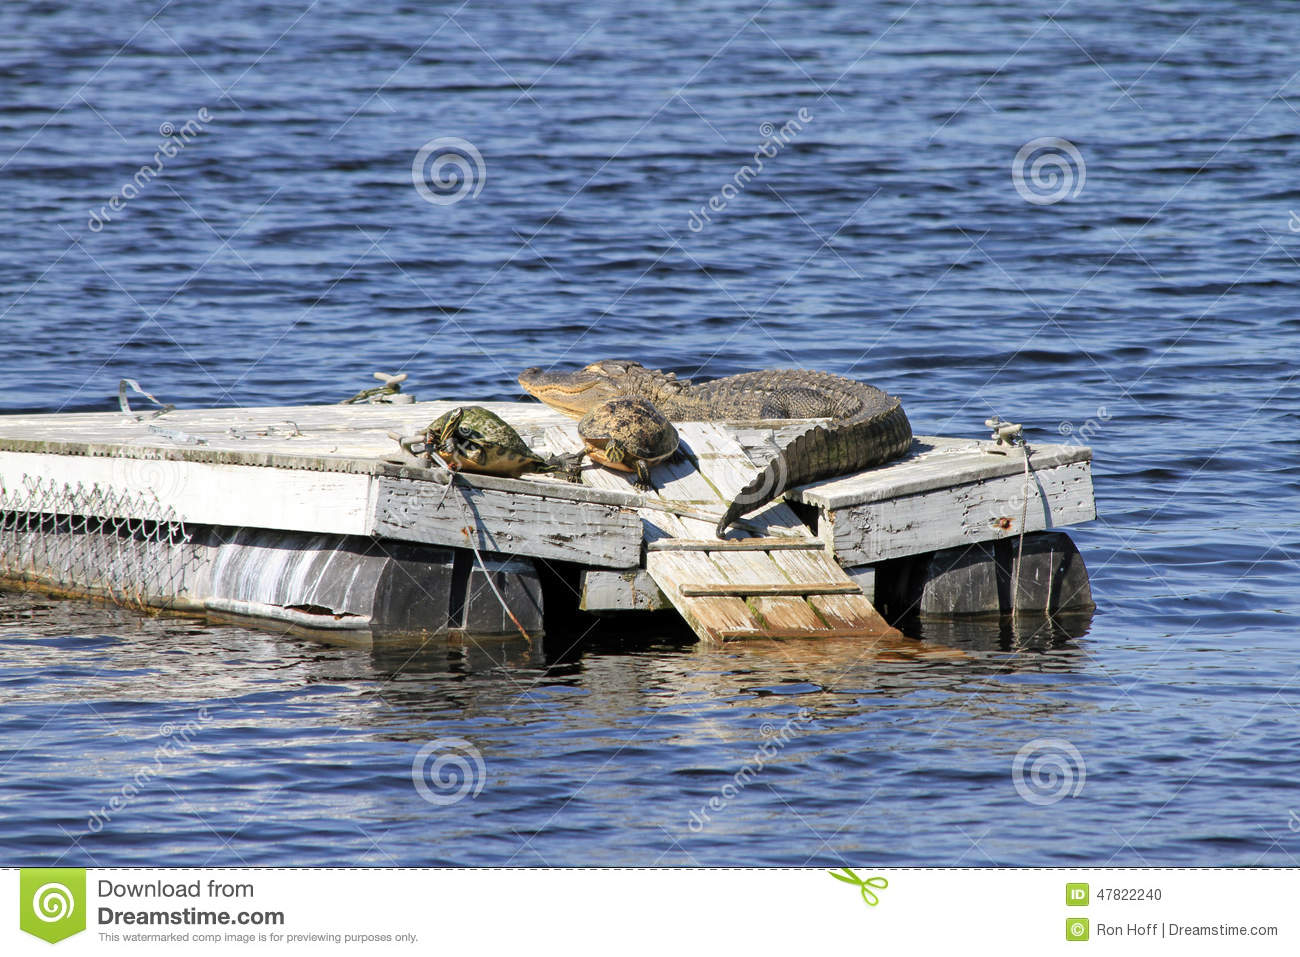 An Alligator and Two Turtles on a Raft